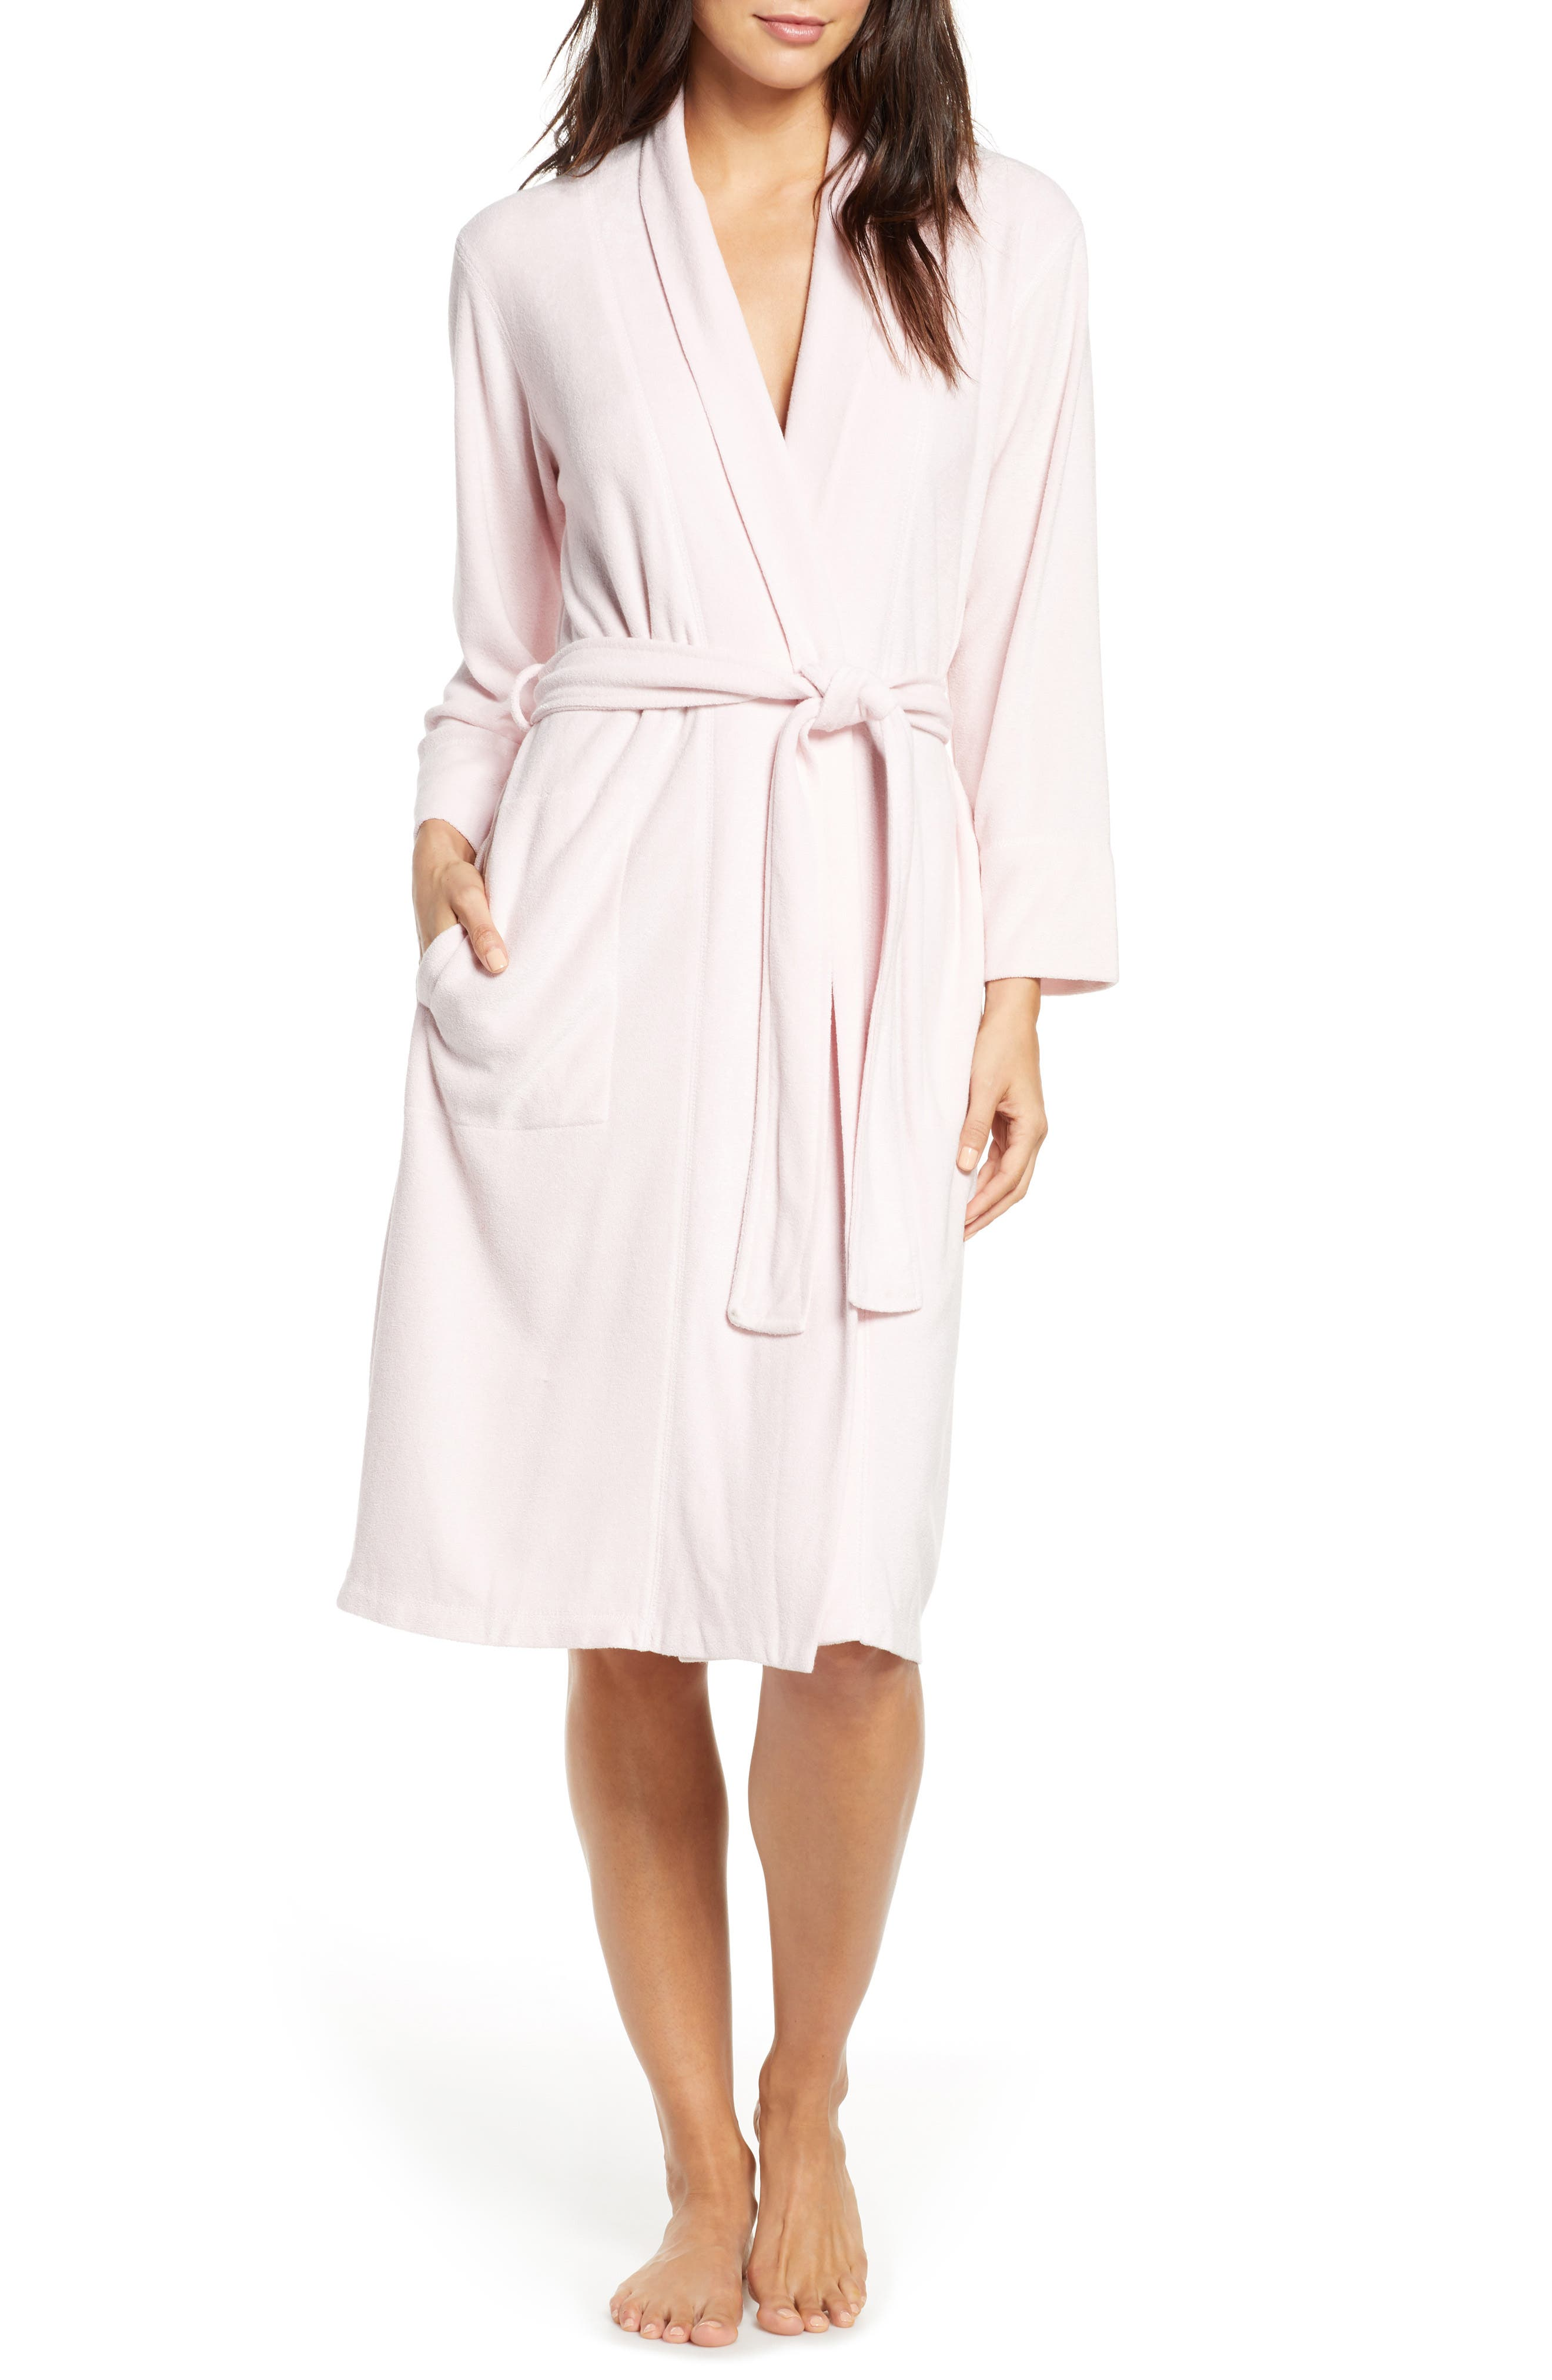 Get ready to indulge at the end of the day in this brushed-terry robe that wraps you in cozy comfort. Style Name: Natori Sierra Brushed Terry Robe. Style Number: 5891900. Available in stores.